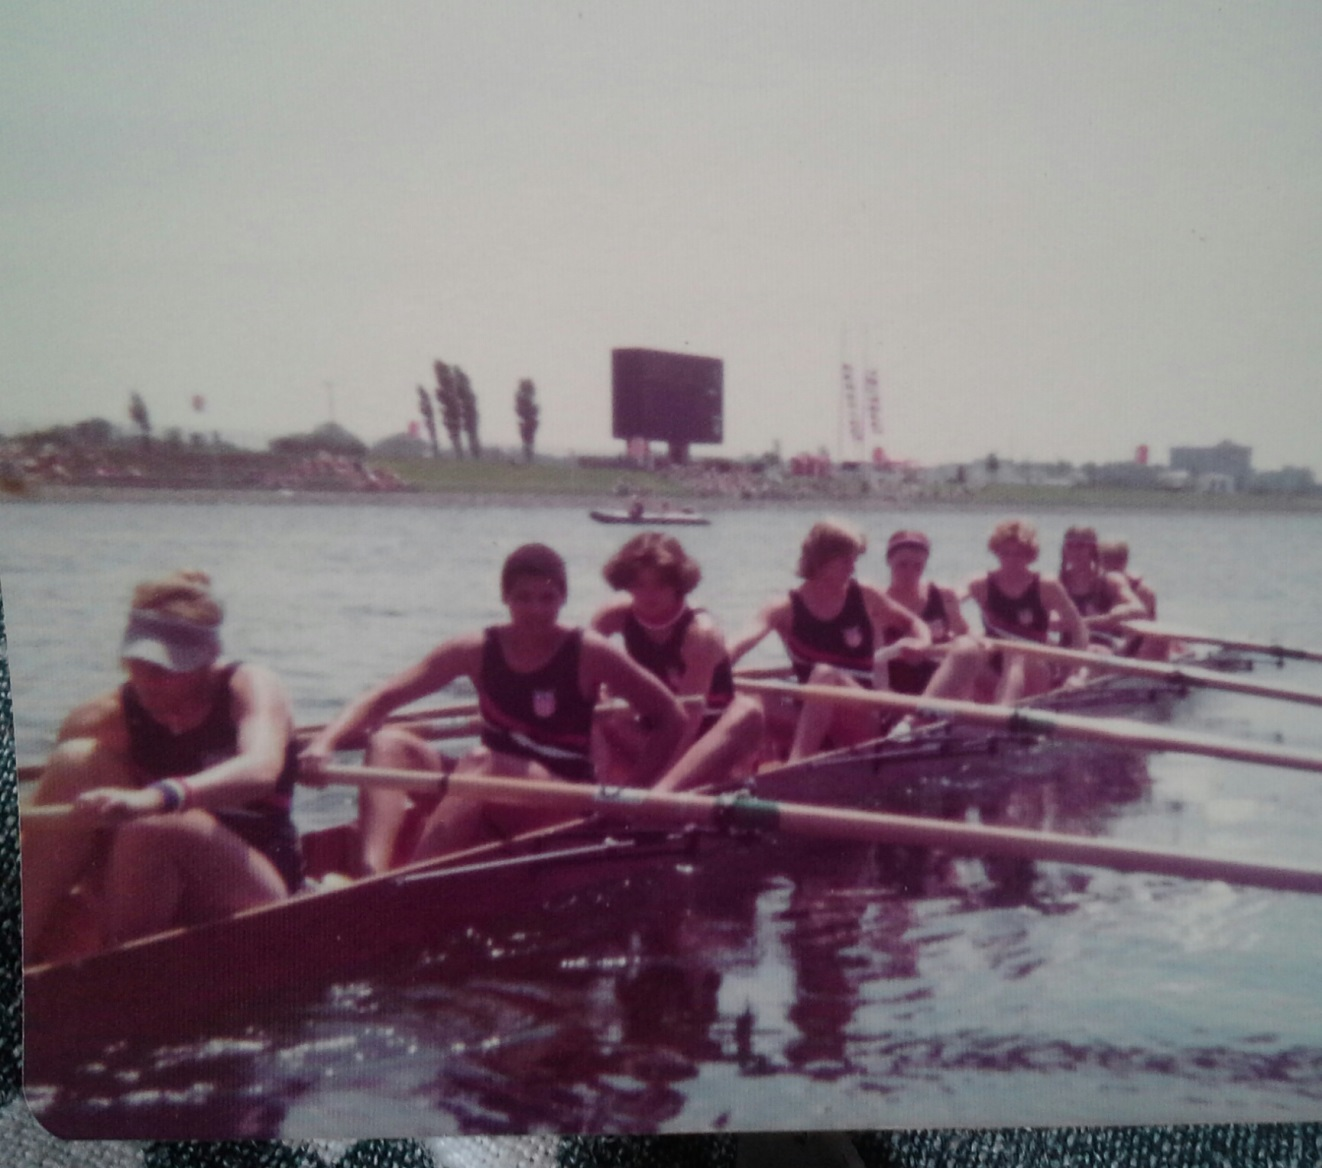 The Women's Eight: Jackie Zoch (stroke), Anita DeFrantz, Carie Graves, Angie Greig, Anne Warner, Peggy McCarthy, Carol Brown, Gail Ricketson, and coxswain Lynn Silliman. Coach: Harry Parker. Anita is now a member of the International Olympic Committee (IOC).